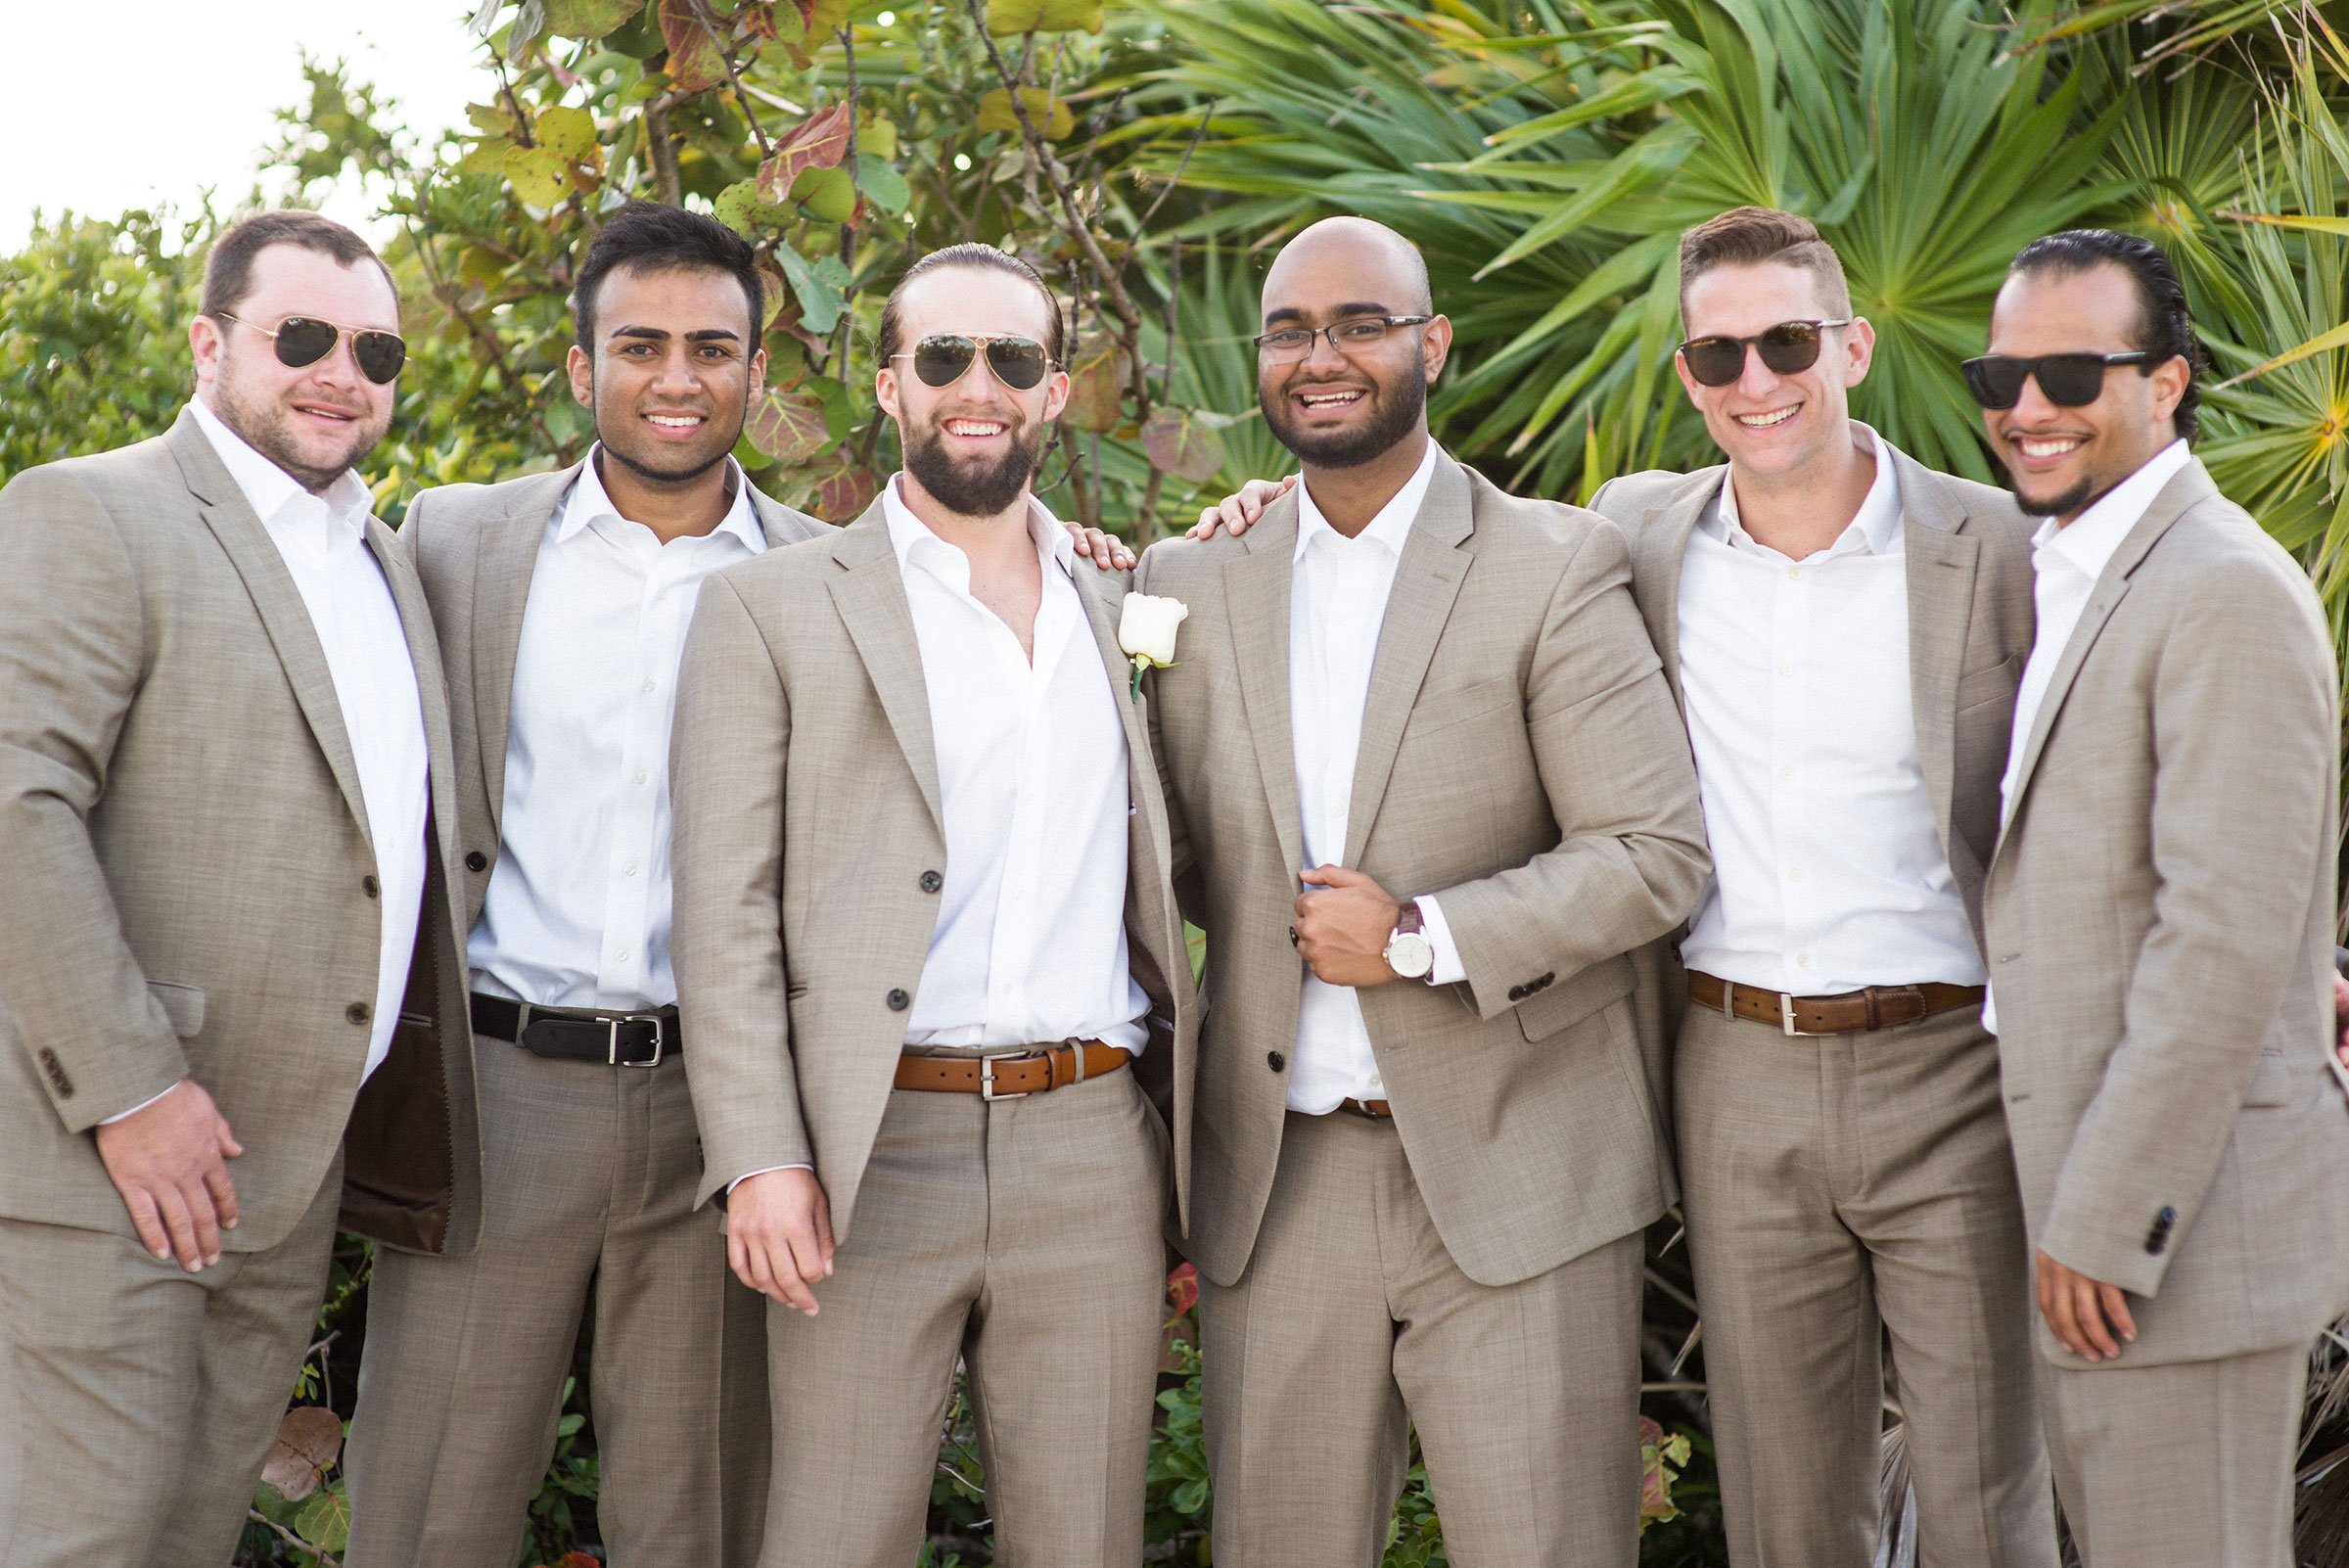 Groom and groomsmen in tan suits for beach wedding.  Destination wedding in Mexico.